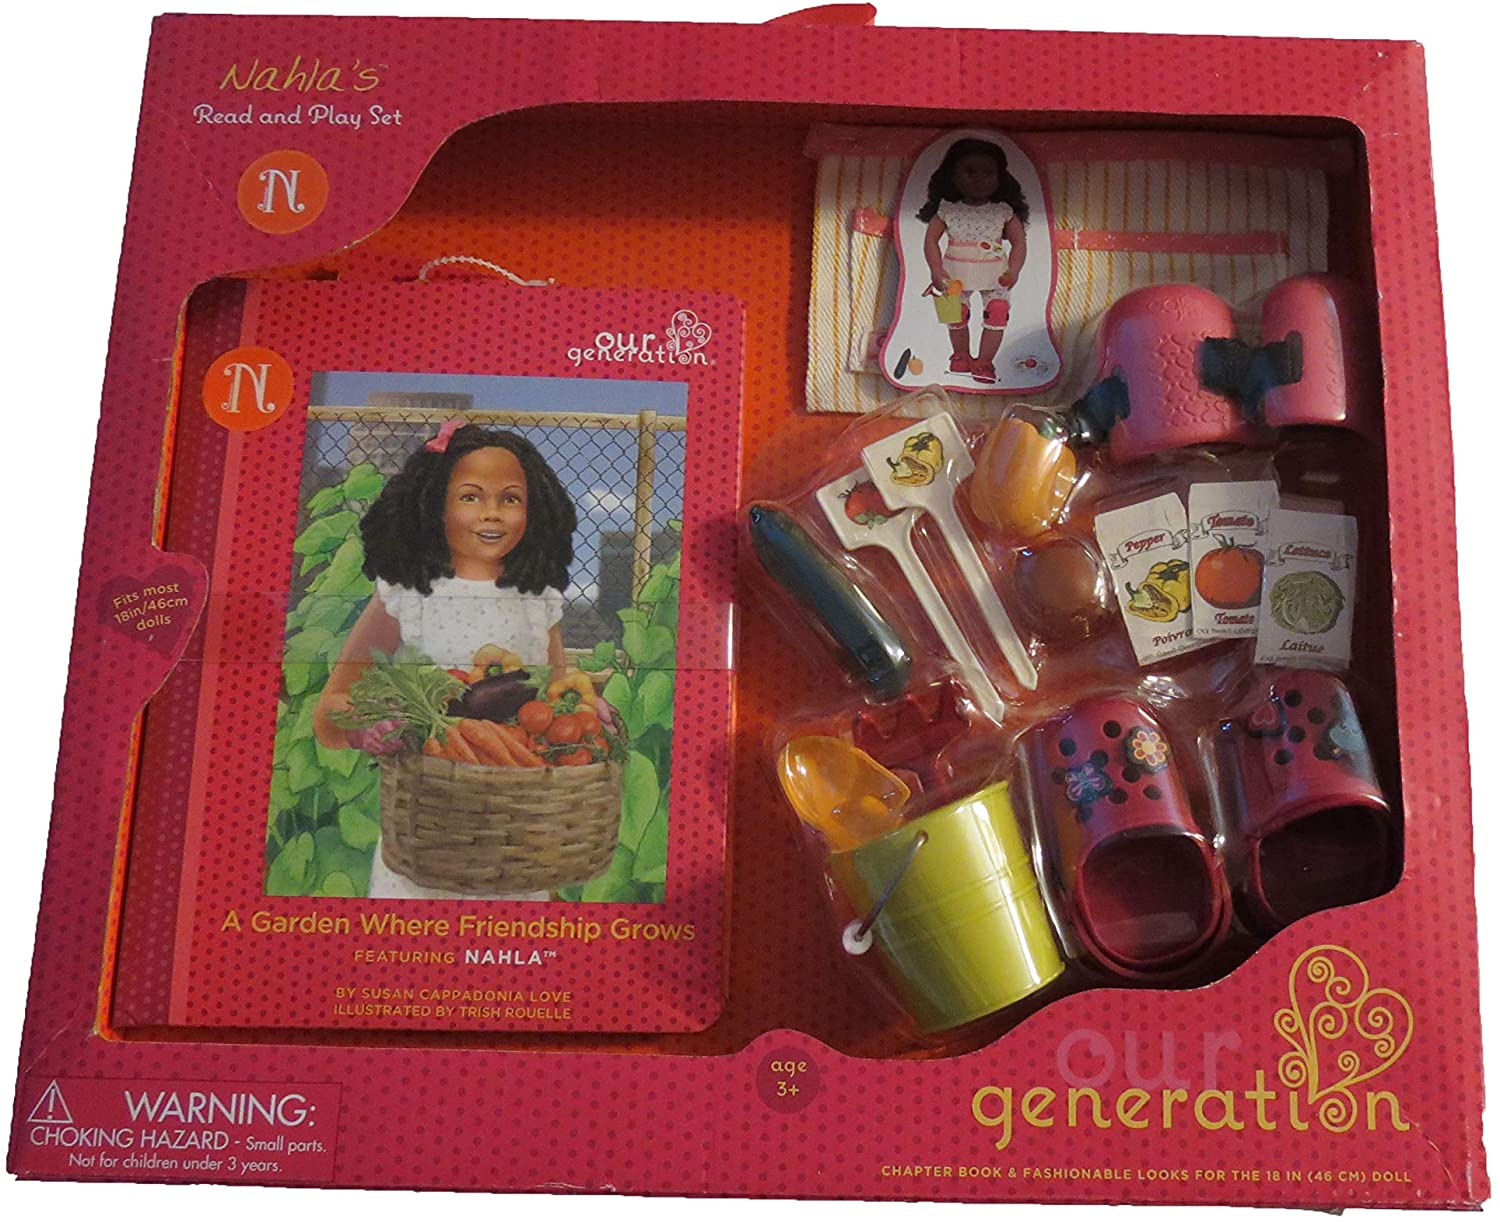 TARGET Our Generation Nahla's Read and Play Set Gardening Garden Apron, Knee Pads, Shoes, rake, Shovel, Bucket, Vegetables